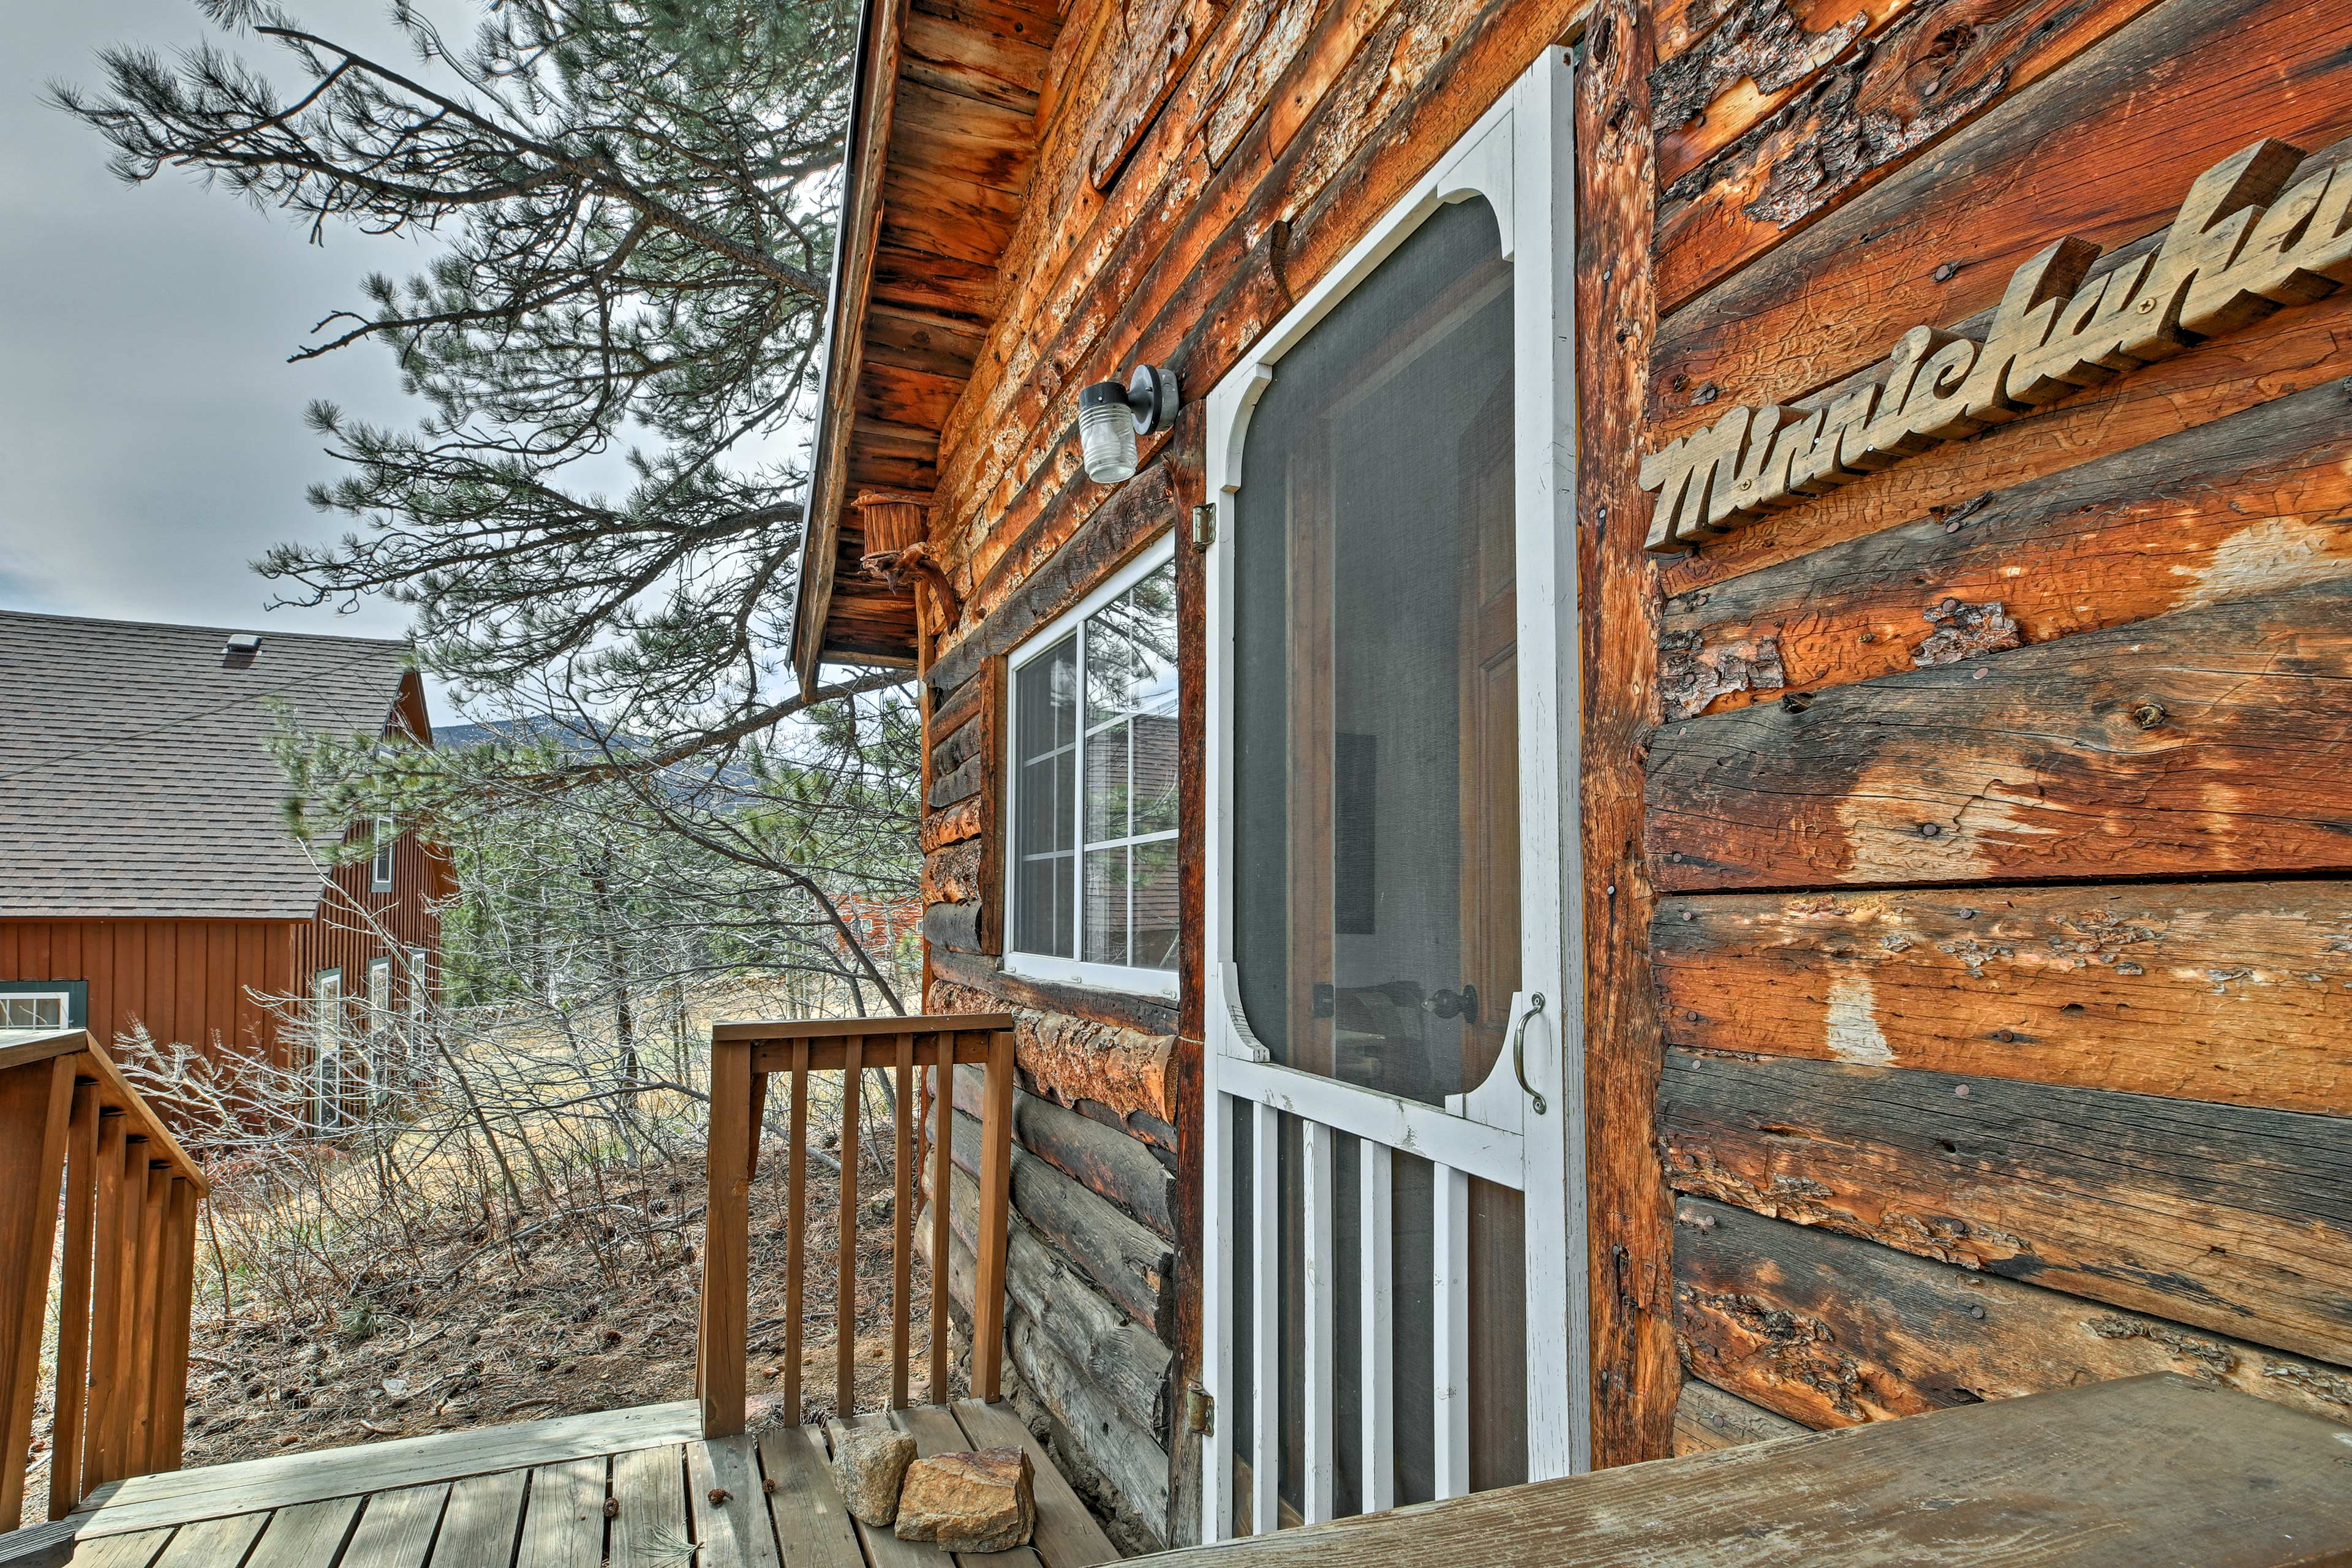 The classic cabin is located in the small town of Allenspark.